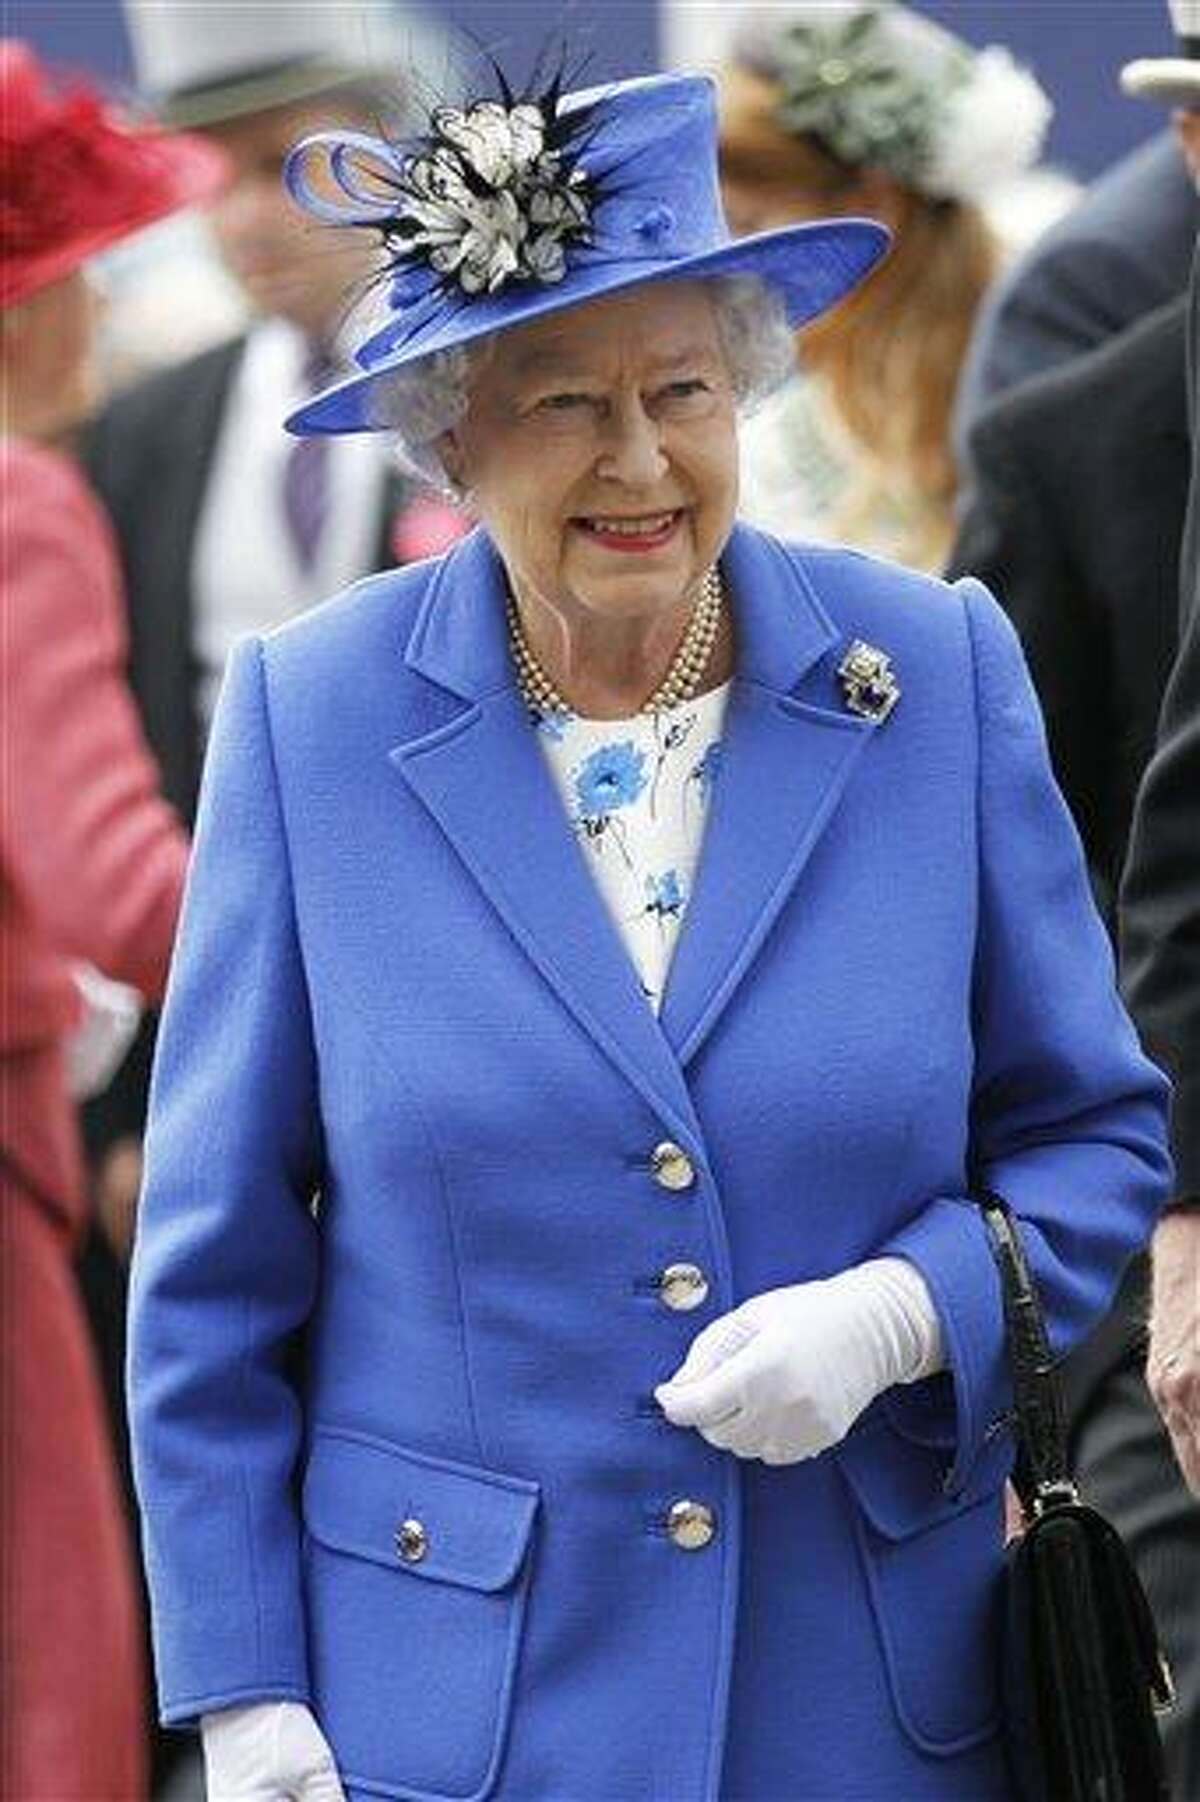 Britain's Queen Elizabeth II arrives for the Epsom Derby at Epsom race course, southern England at the start of a four-day Diamond Jubilee celebration to mark the 60th anniversary of the Queen's accession to the throne Saturday, June 2, 2012. The queen will celebrate Saturday at the Epsom Derby, a highlight of the horseracing calendar, and on Sunday she will lead a 1,000-boat flotilla on the River Thames. Monday's festivities include a pop concert in front of Buckingham Palace with Paul McCartney and Elton John, and festivities climax Tuesday with a religious service, a procession through the streets of London and the royal family's appearance on the palace balcony. (AP Photo/Sang Tan)